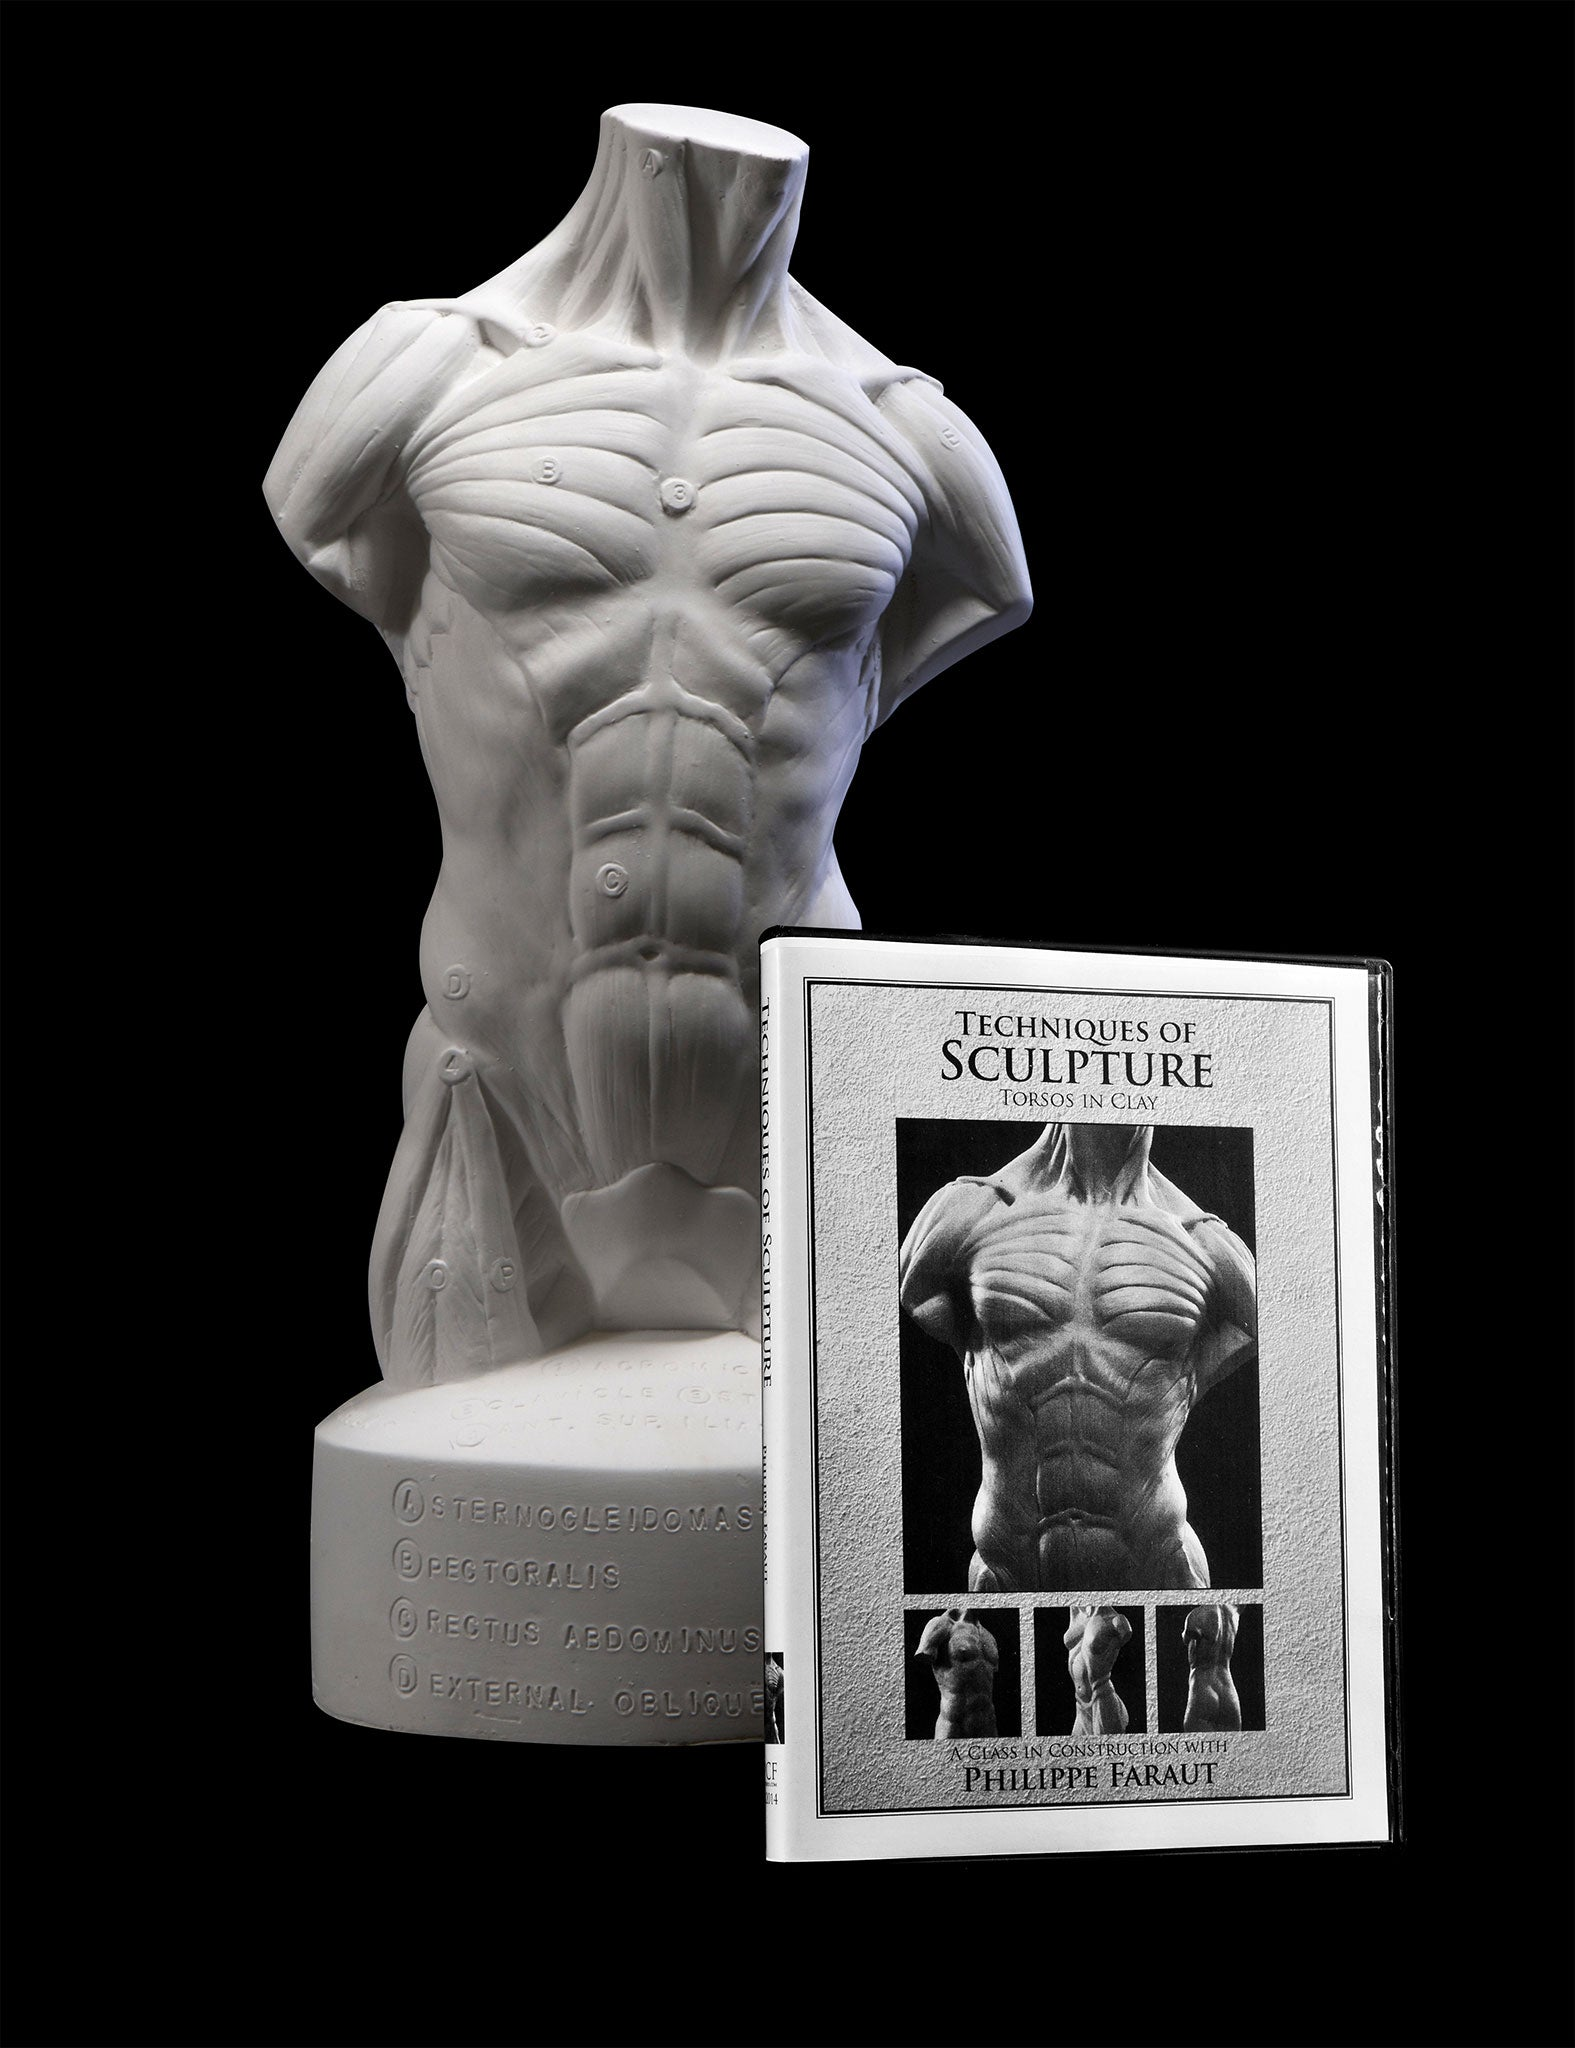 Plaster écorché torso with instructional sculpting dvd by Faraut